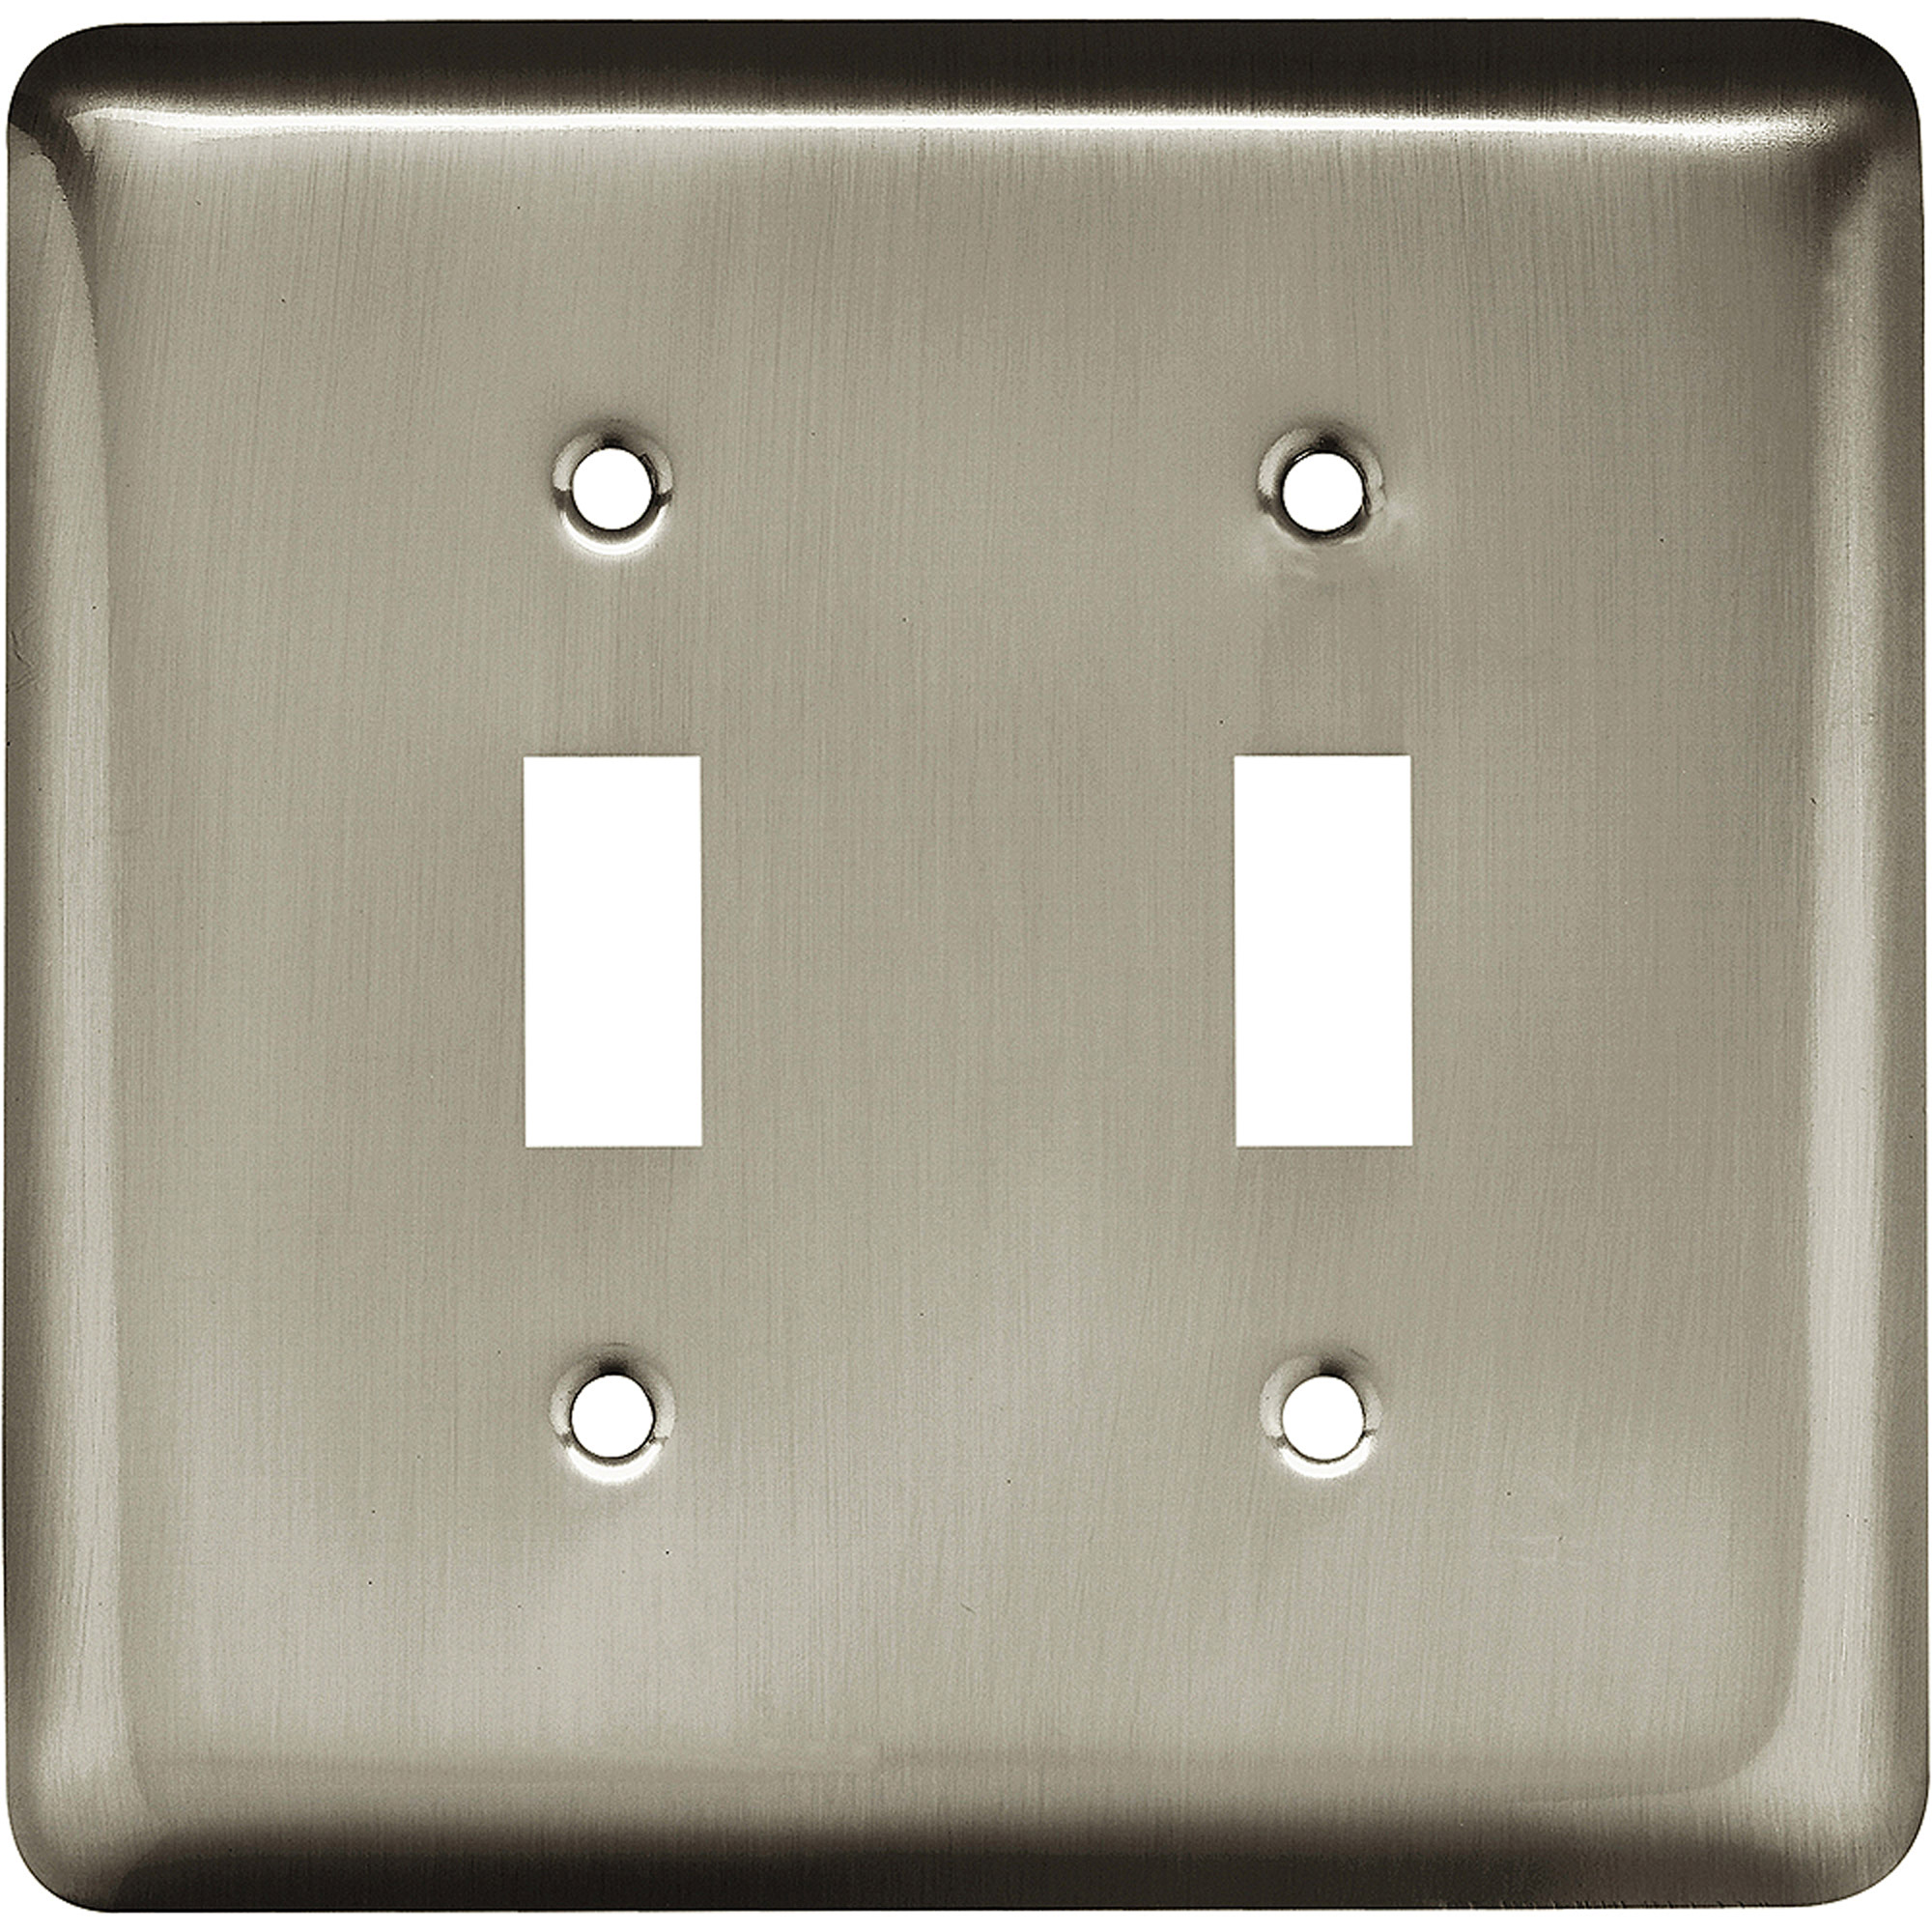 Brainerd Rounded Corner Double Switch Wall Plate, Available in Multiple Colors